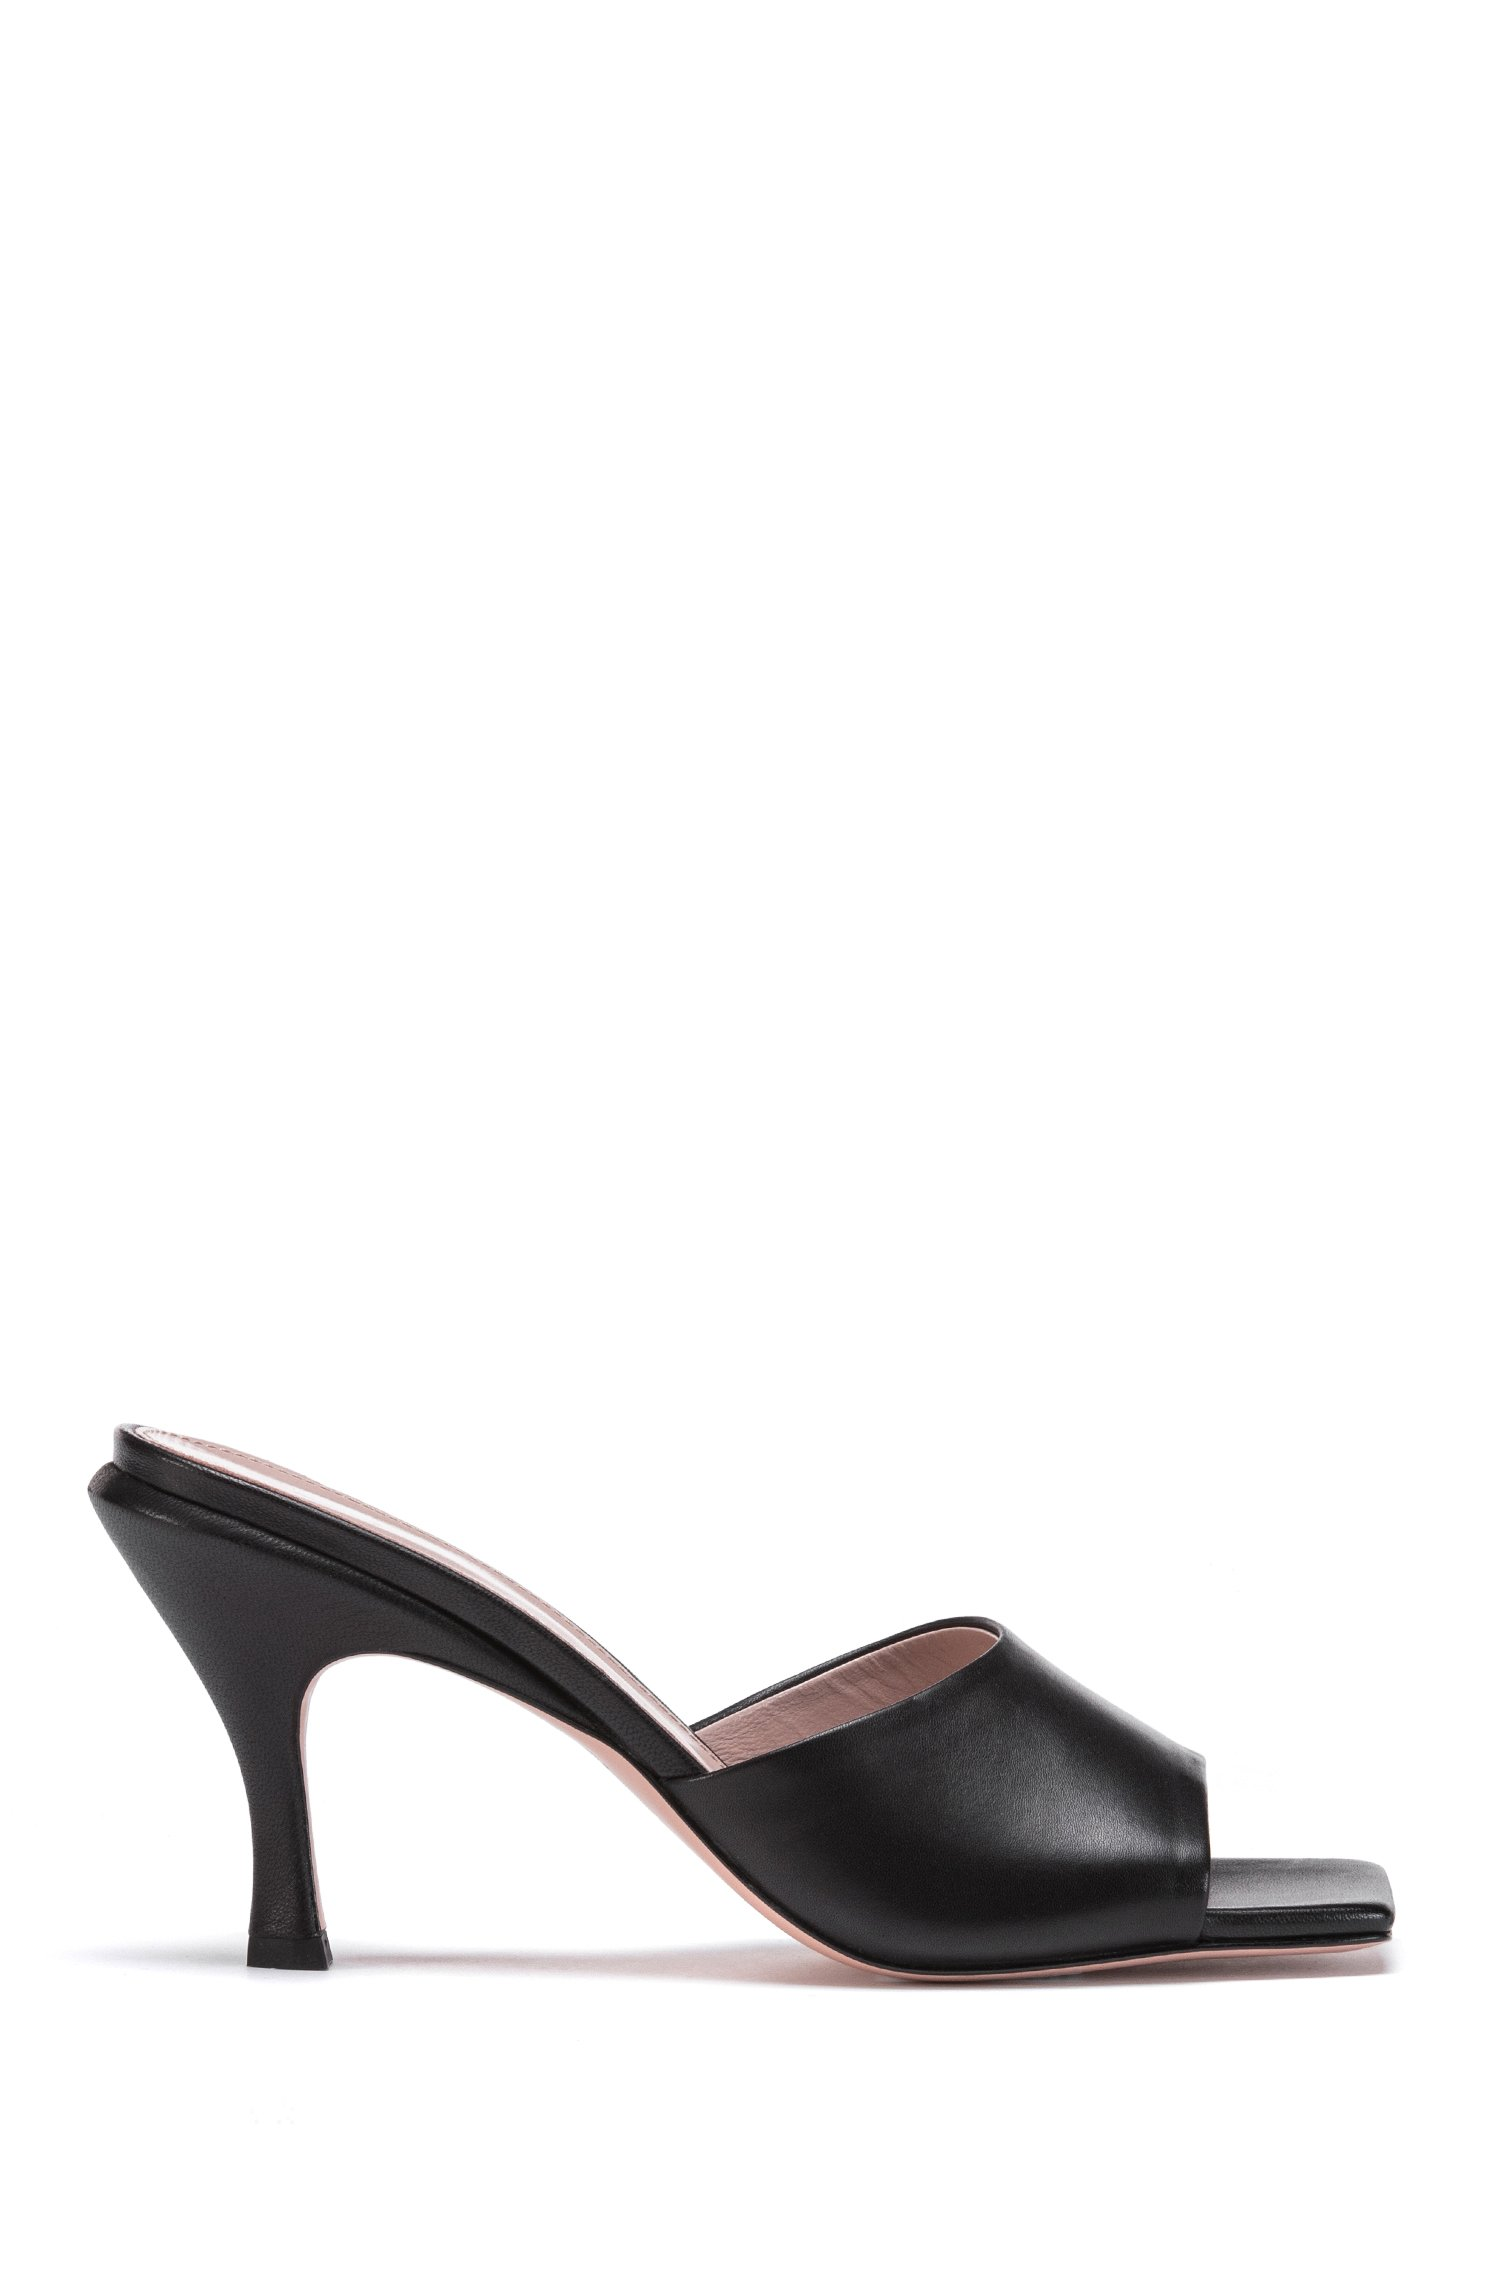 Italian-made mules in nappa leather with squared toe, Black